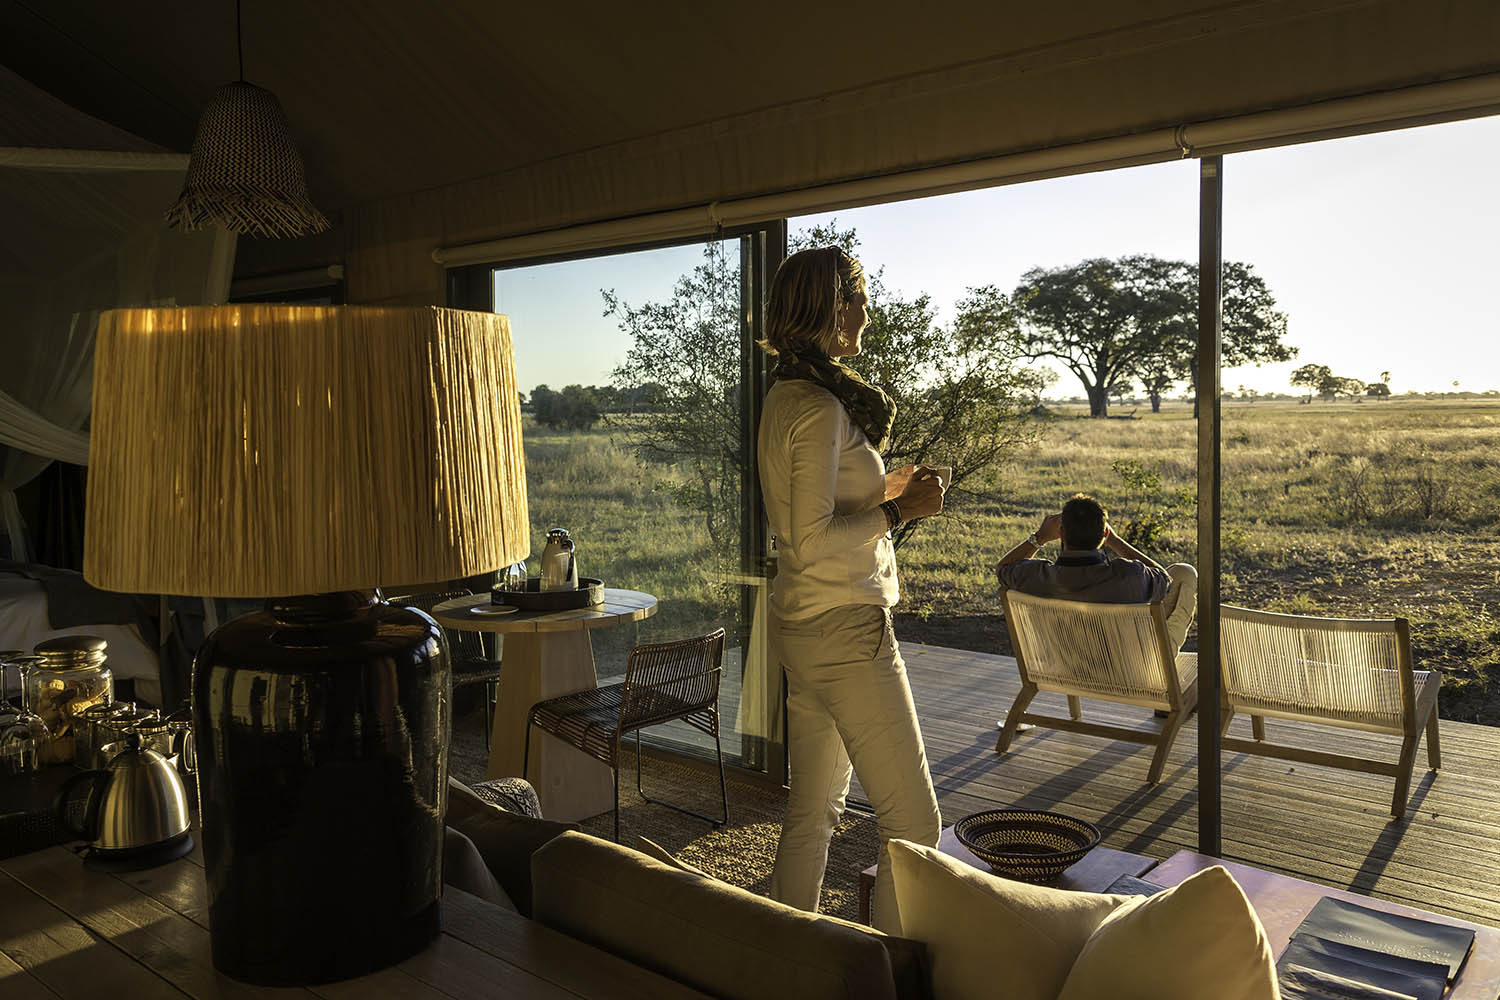 linkwasha camp hwange-national-park-zimbabwe-lodges-luxury-accommodation-wilderness-tea-lounge